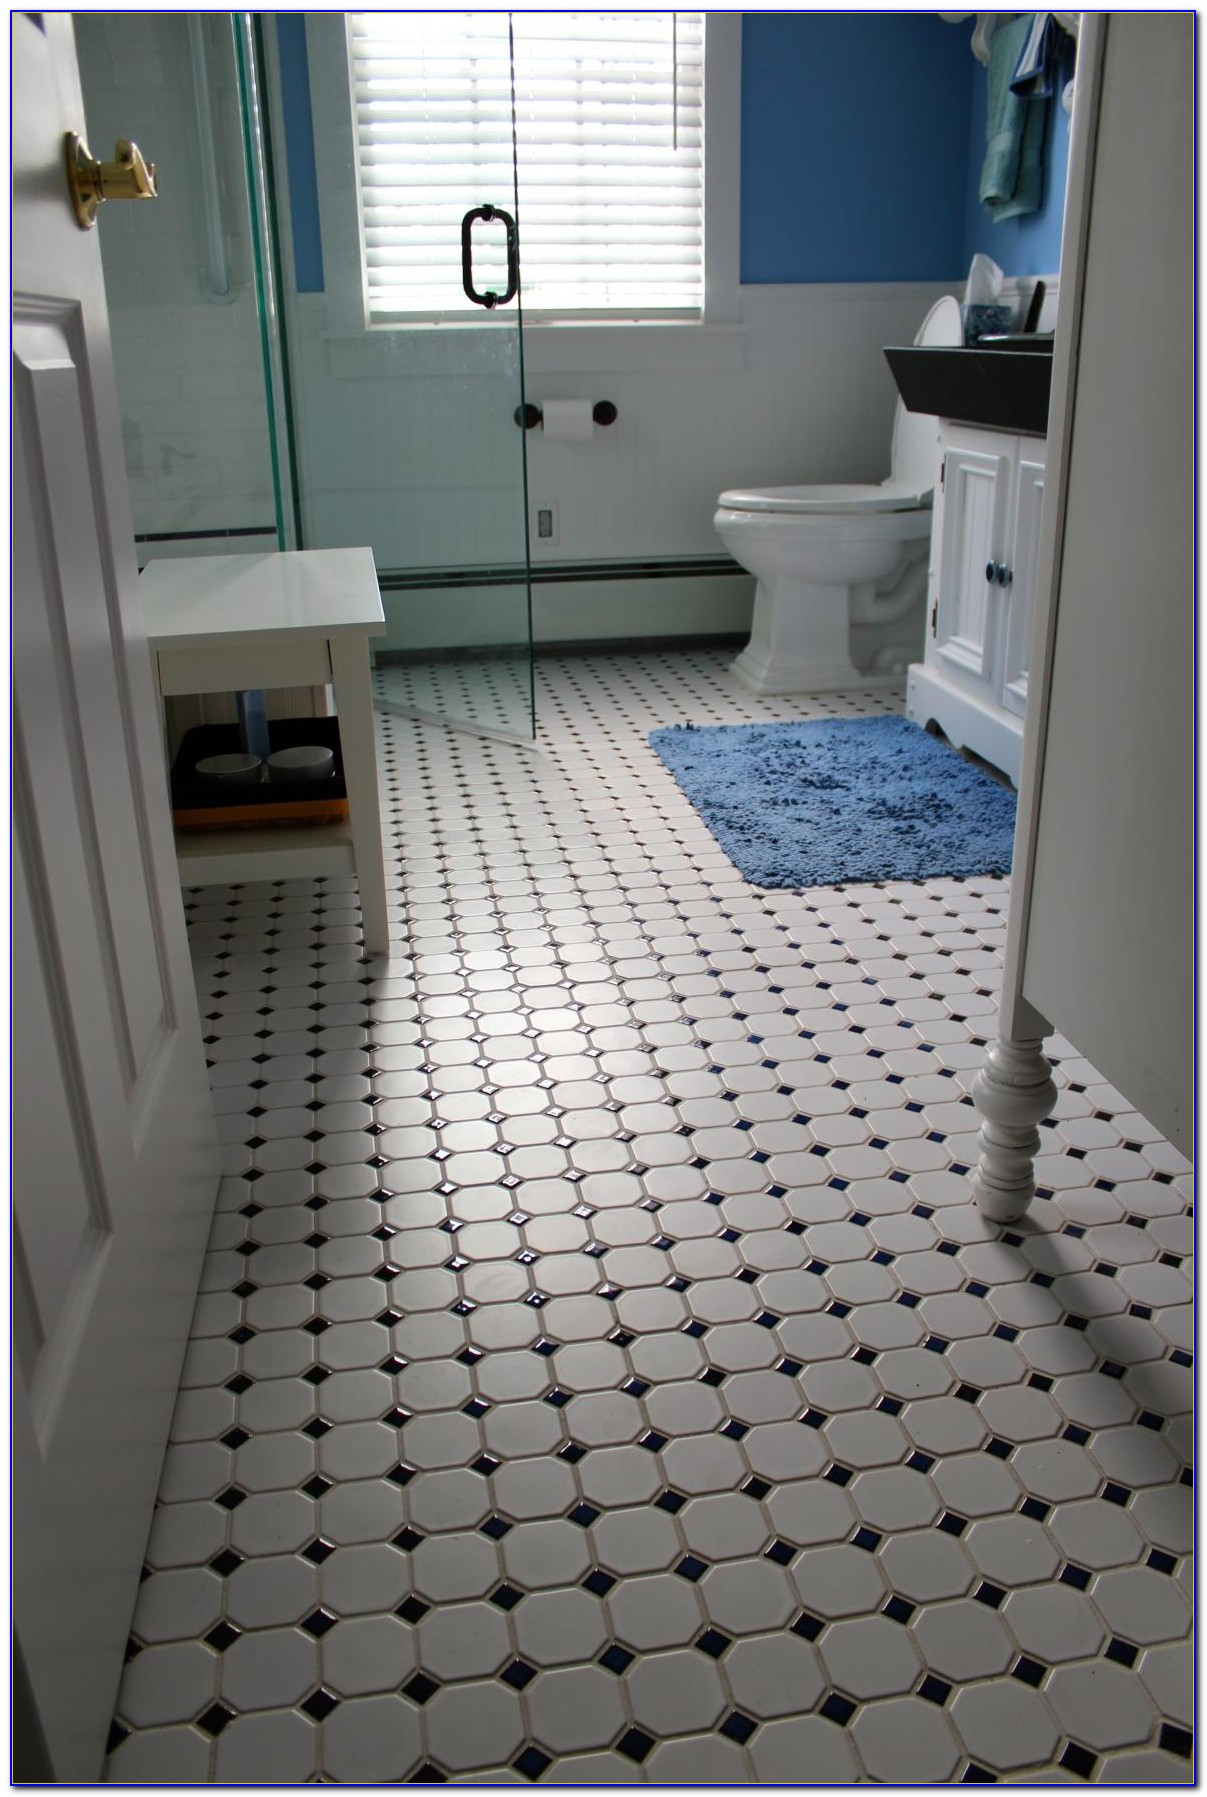 Bathroom Tile Floor Design